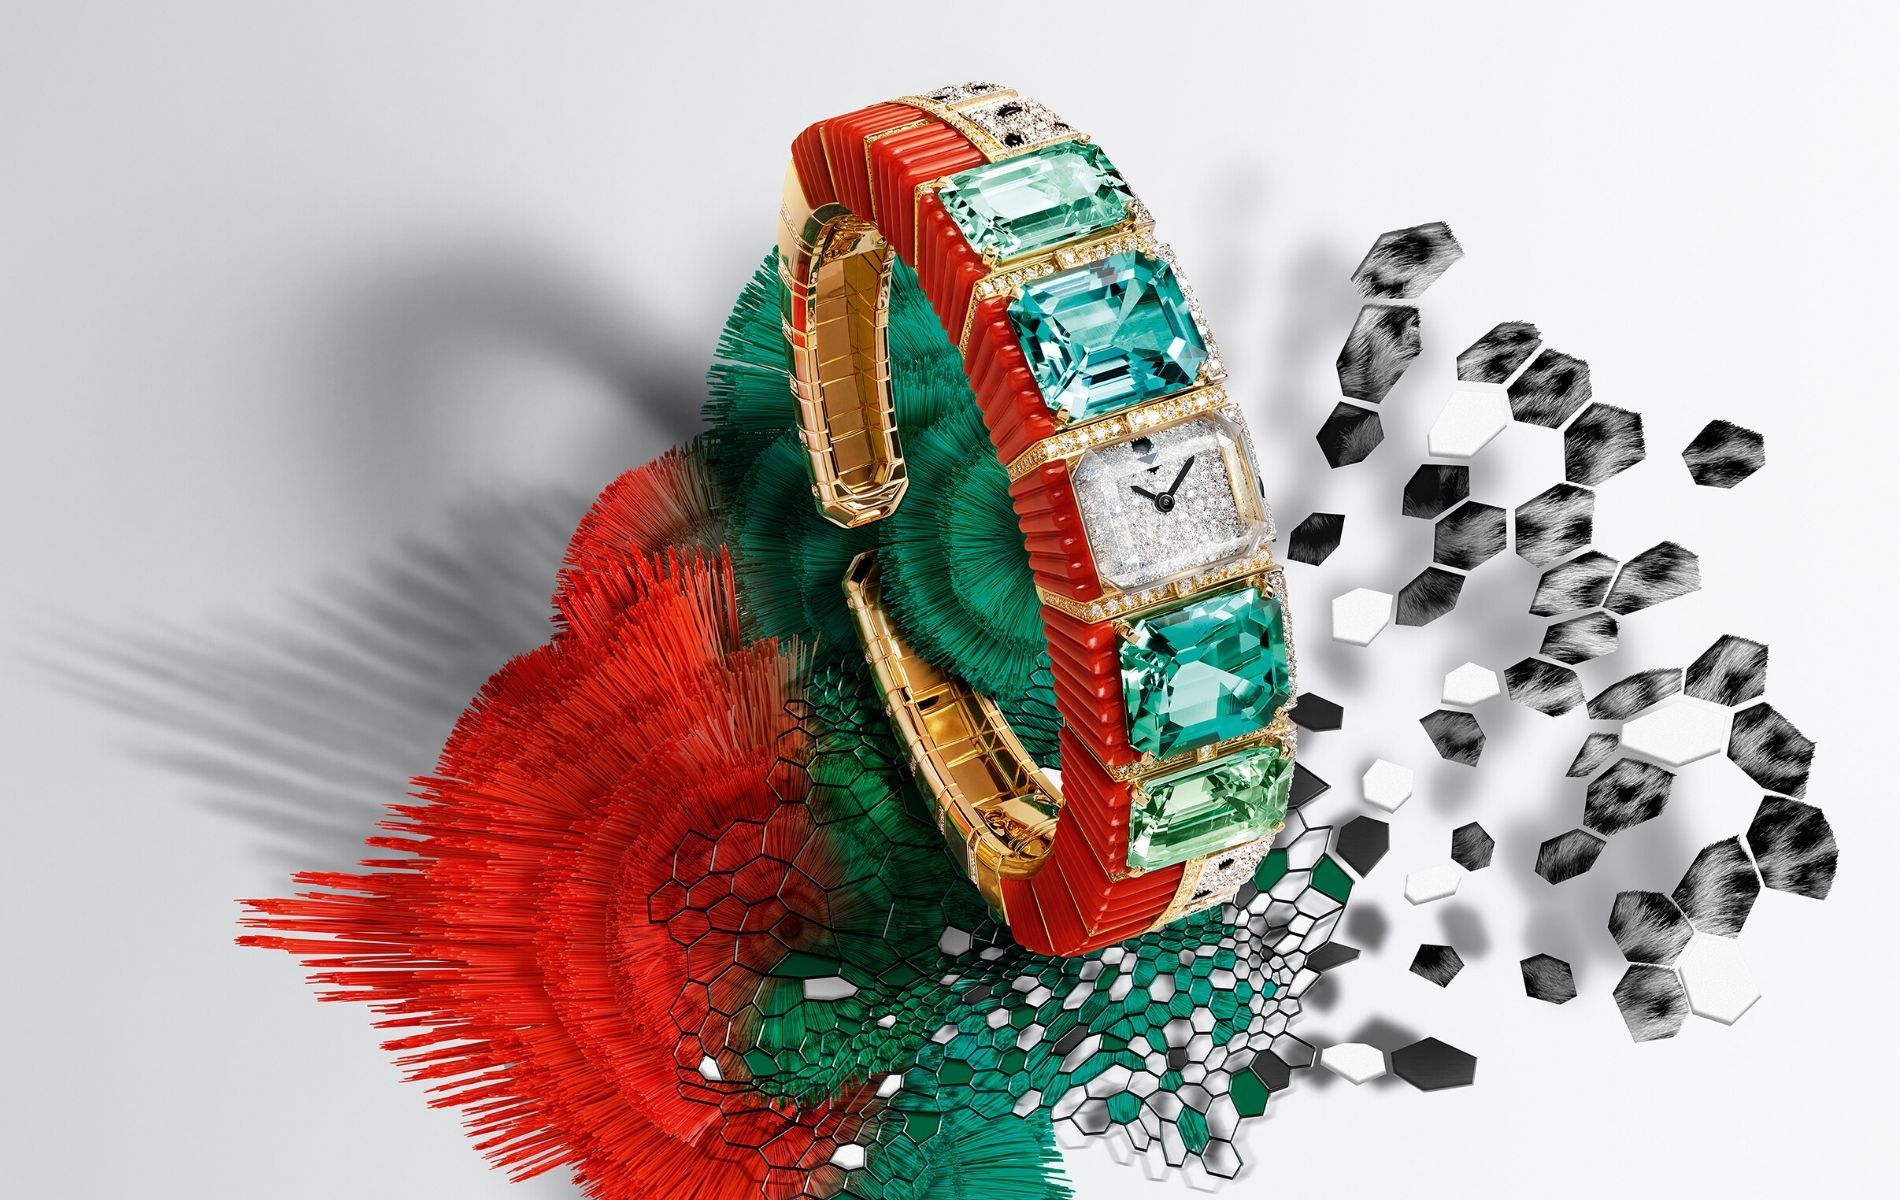 Panthère Tropicale wristwatch endowed with tourmalines, aquamarines, coral and diamonds